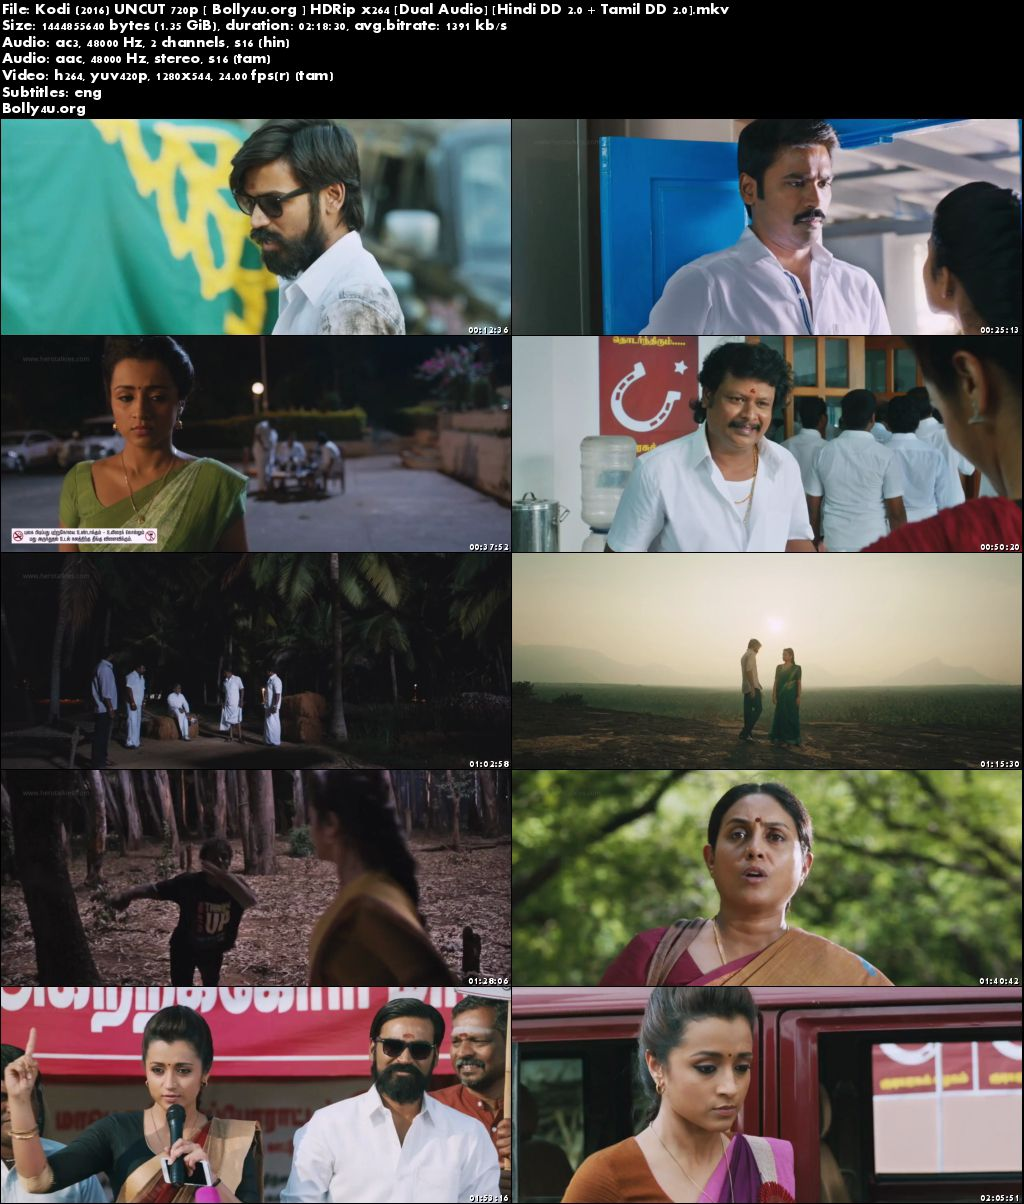 Kodi 2016 HDRip 720p UNCUT Hindi Dubbed Dual Audio Download